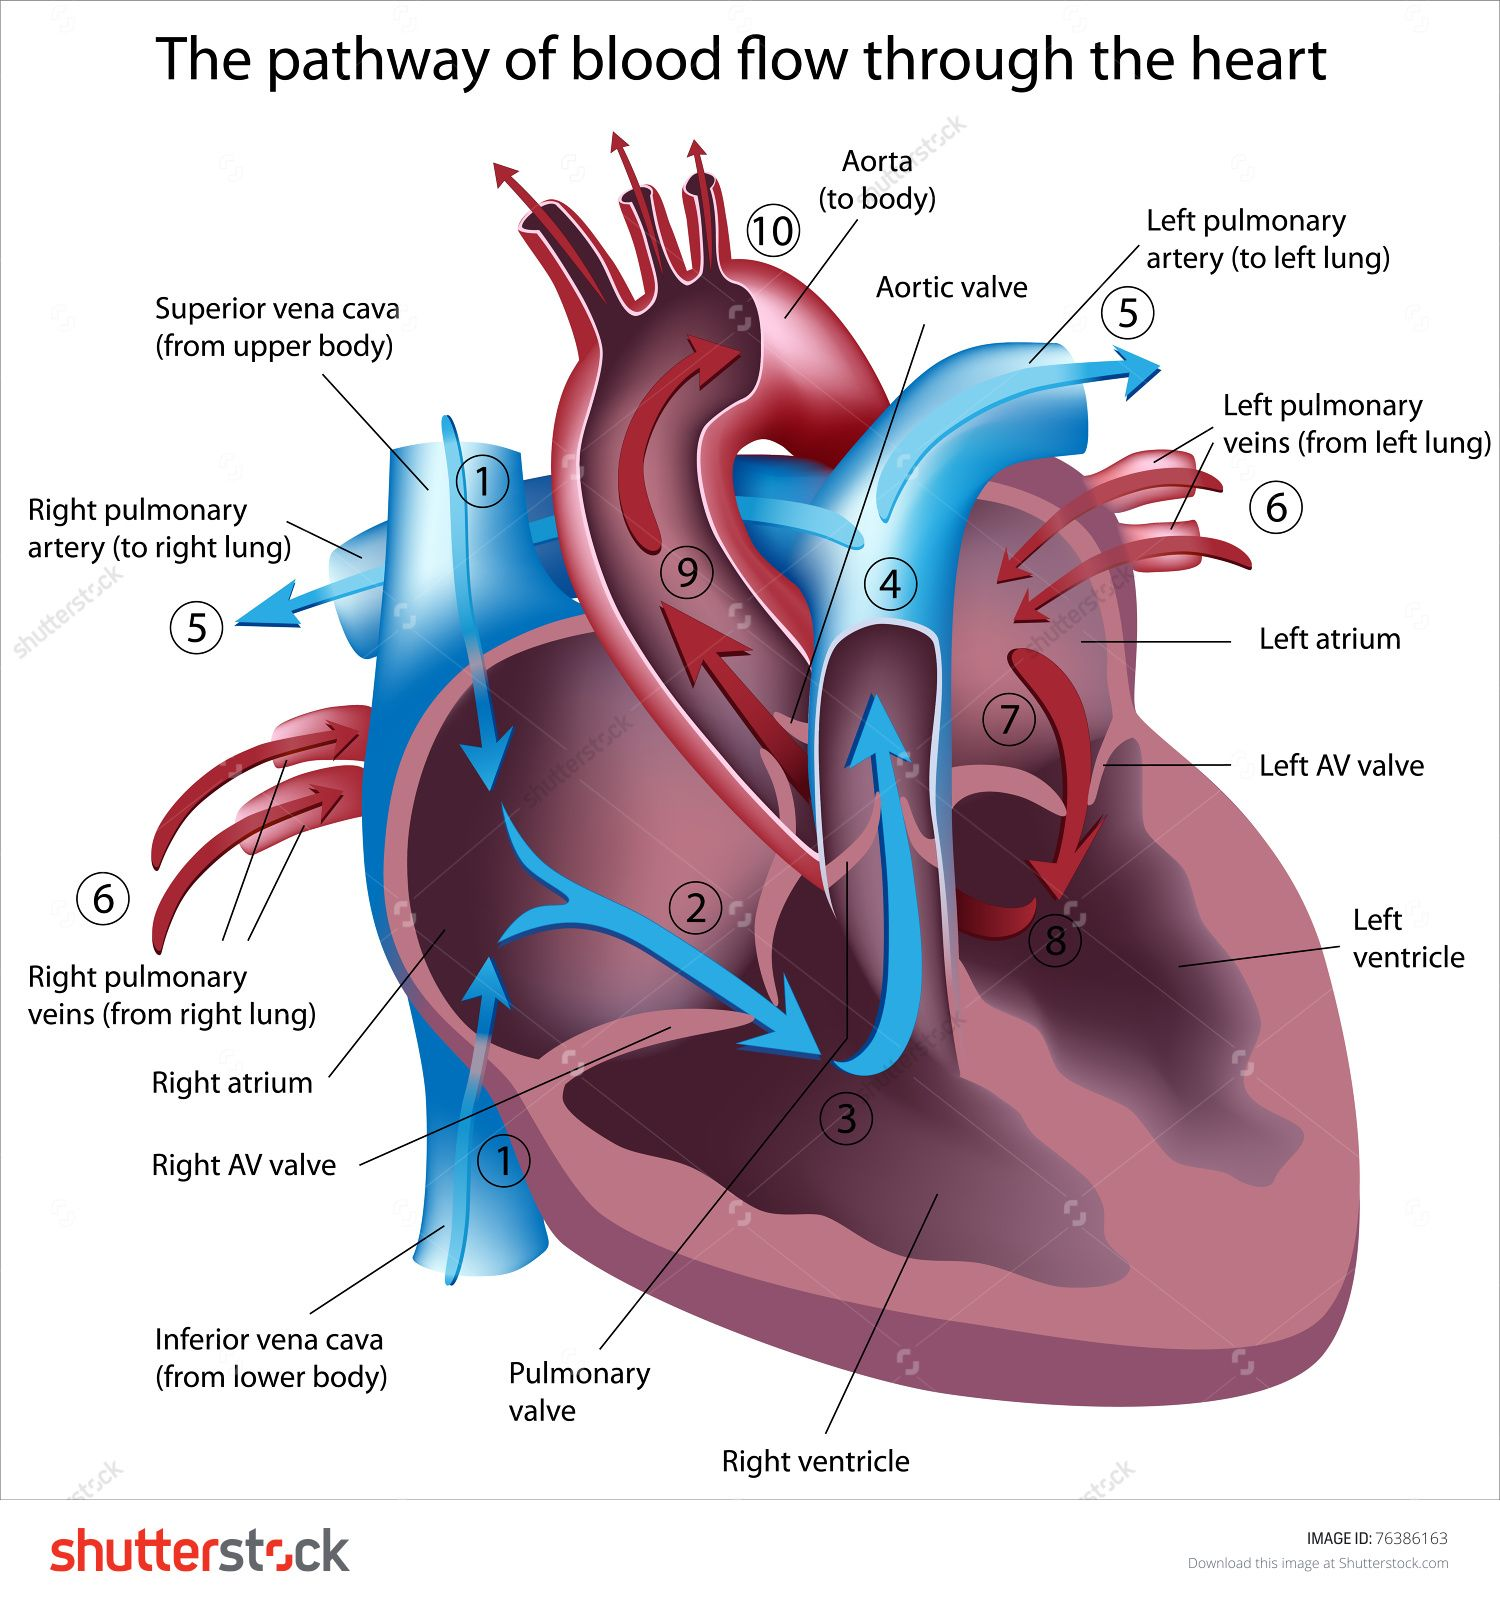 medium resolution of pathway of blood flow through the heart